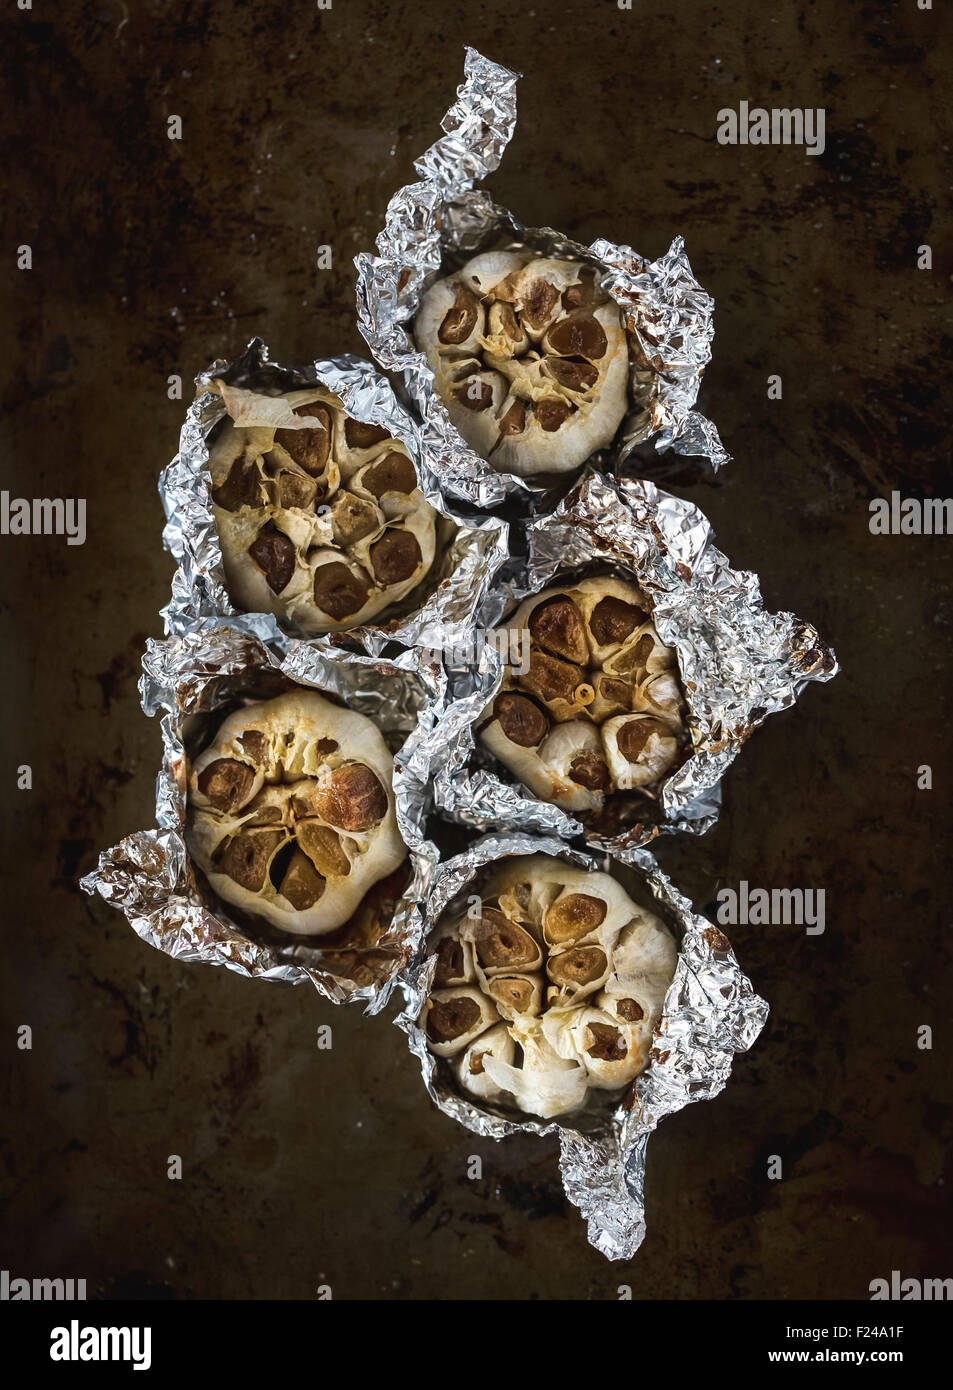 Oven-Roasted Garlic bulbs are displayed on a dark background. - Stock Image